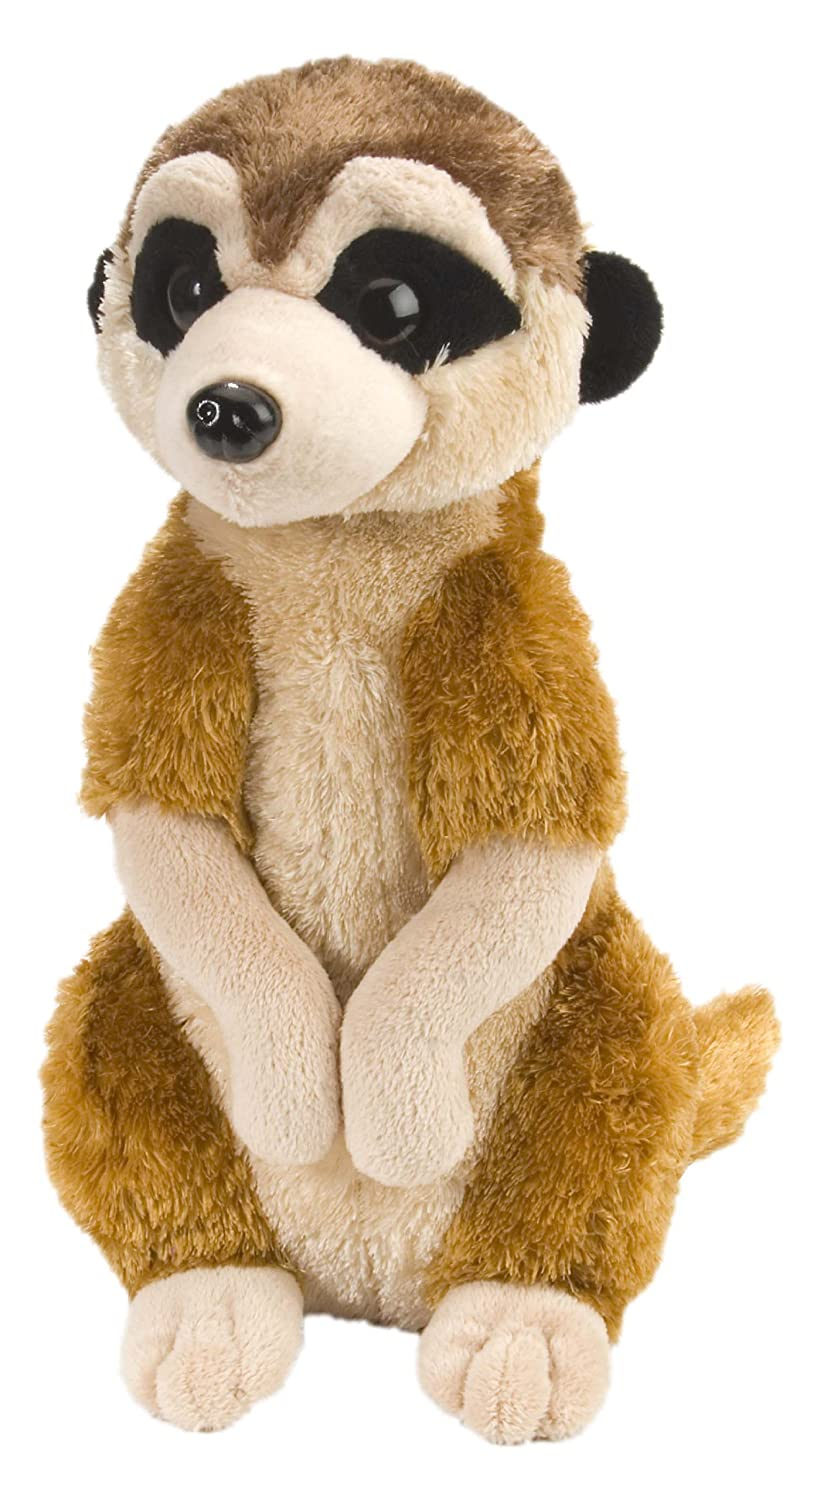 Amazon.com: Wild Republic Meerkat Plush, Stuffed Animal, Plush Toy, Gifts for Kids, Cuddlekins 12 Inches: Toys & Games